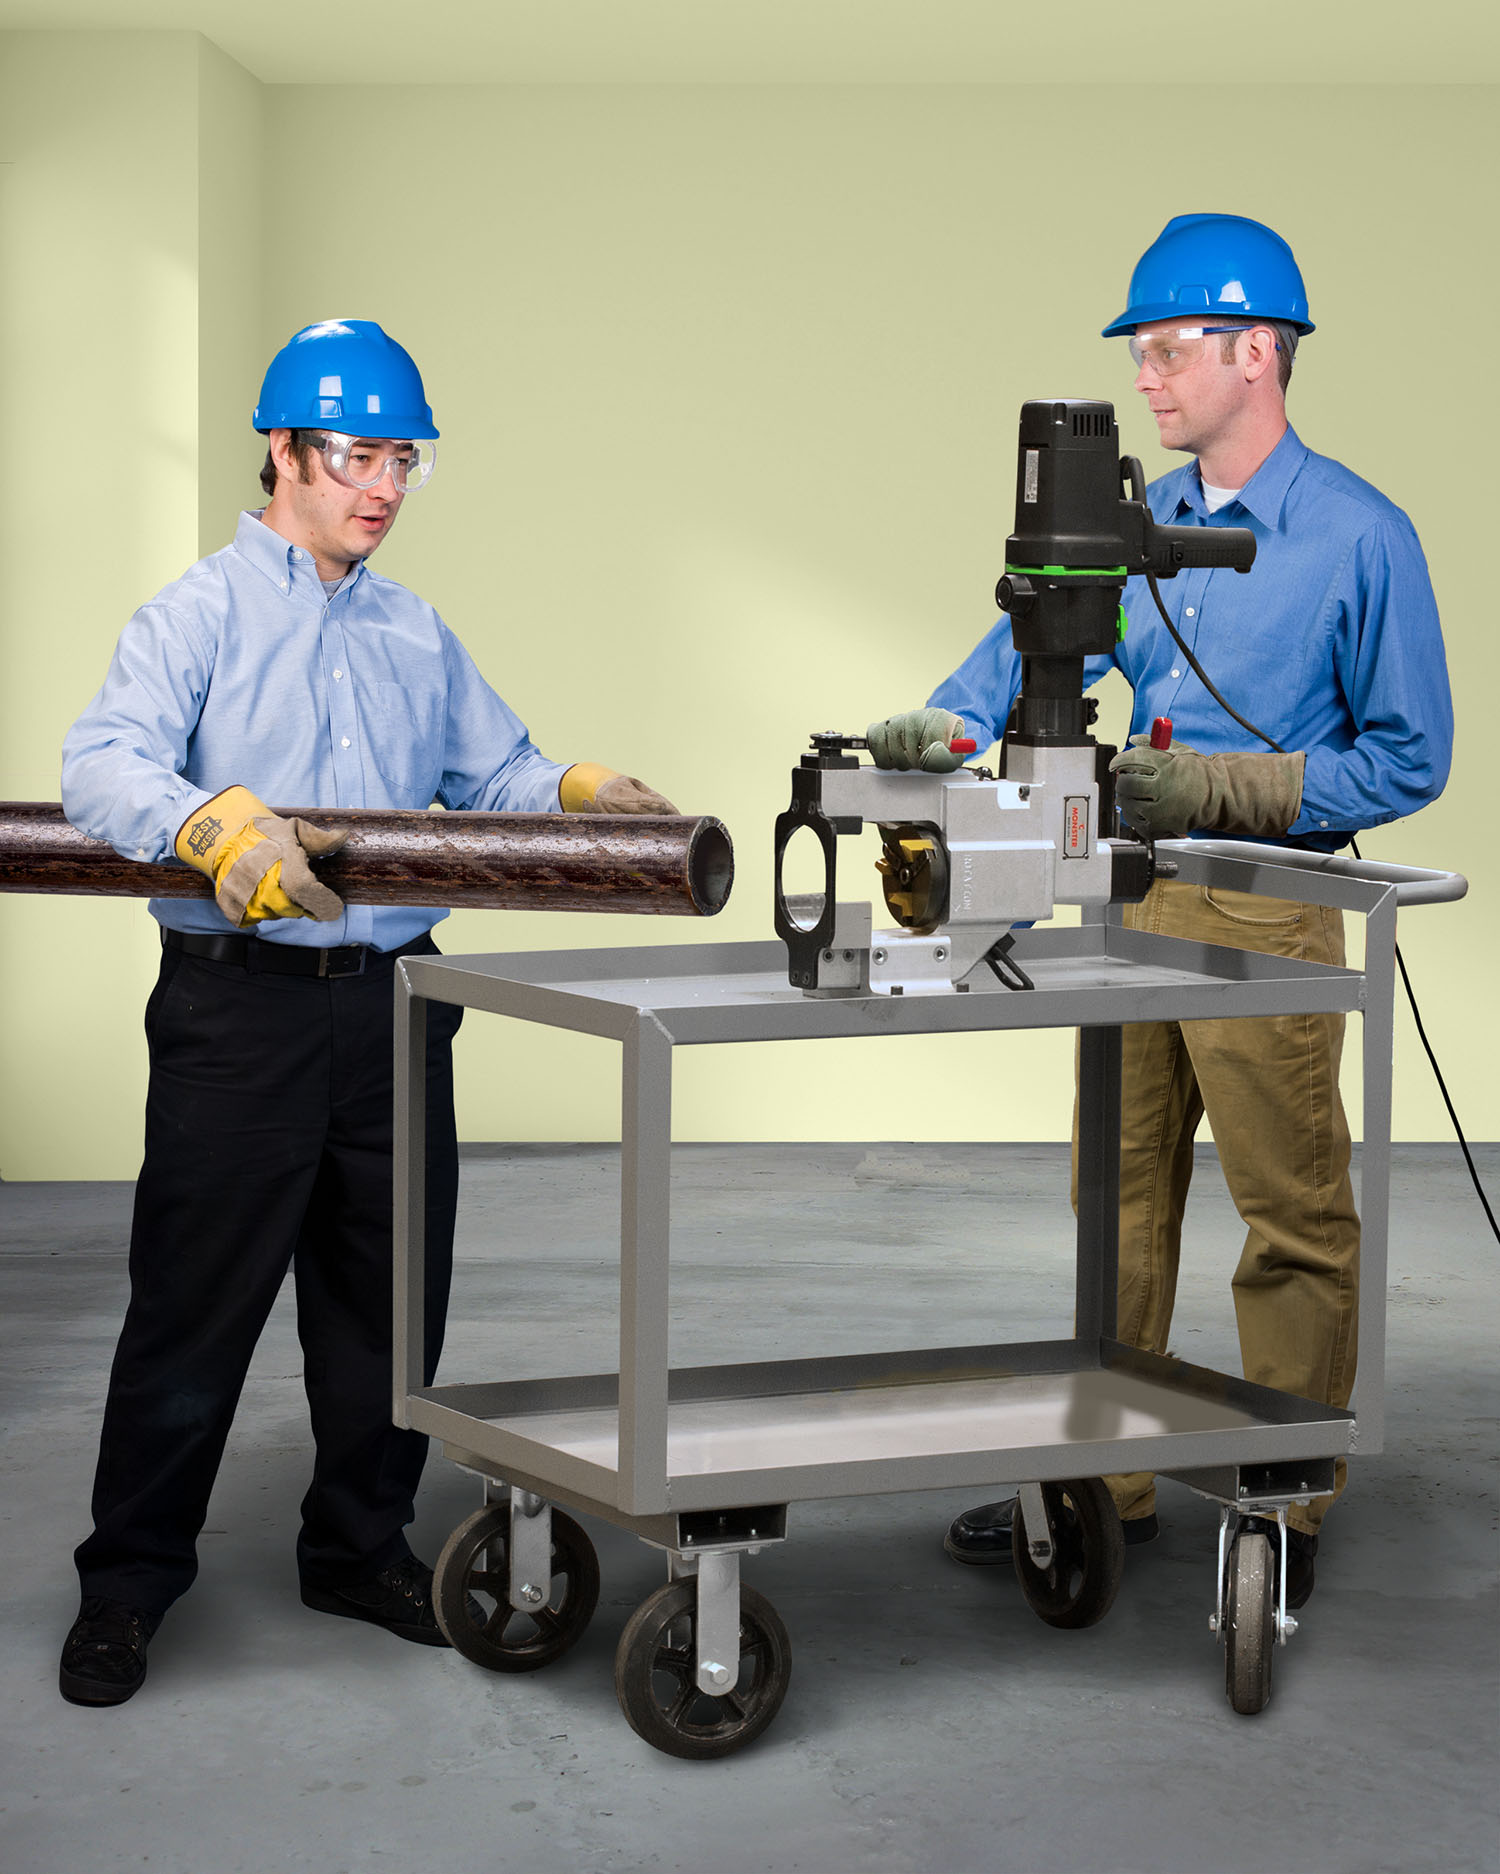 TUBE AND PIPE BEVELER MOUNTS ON CART FOR TOTAL MOBILITY